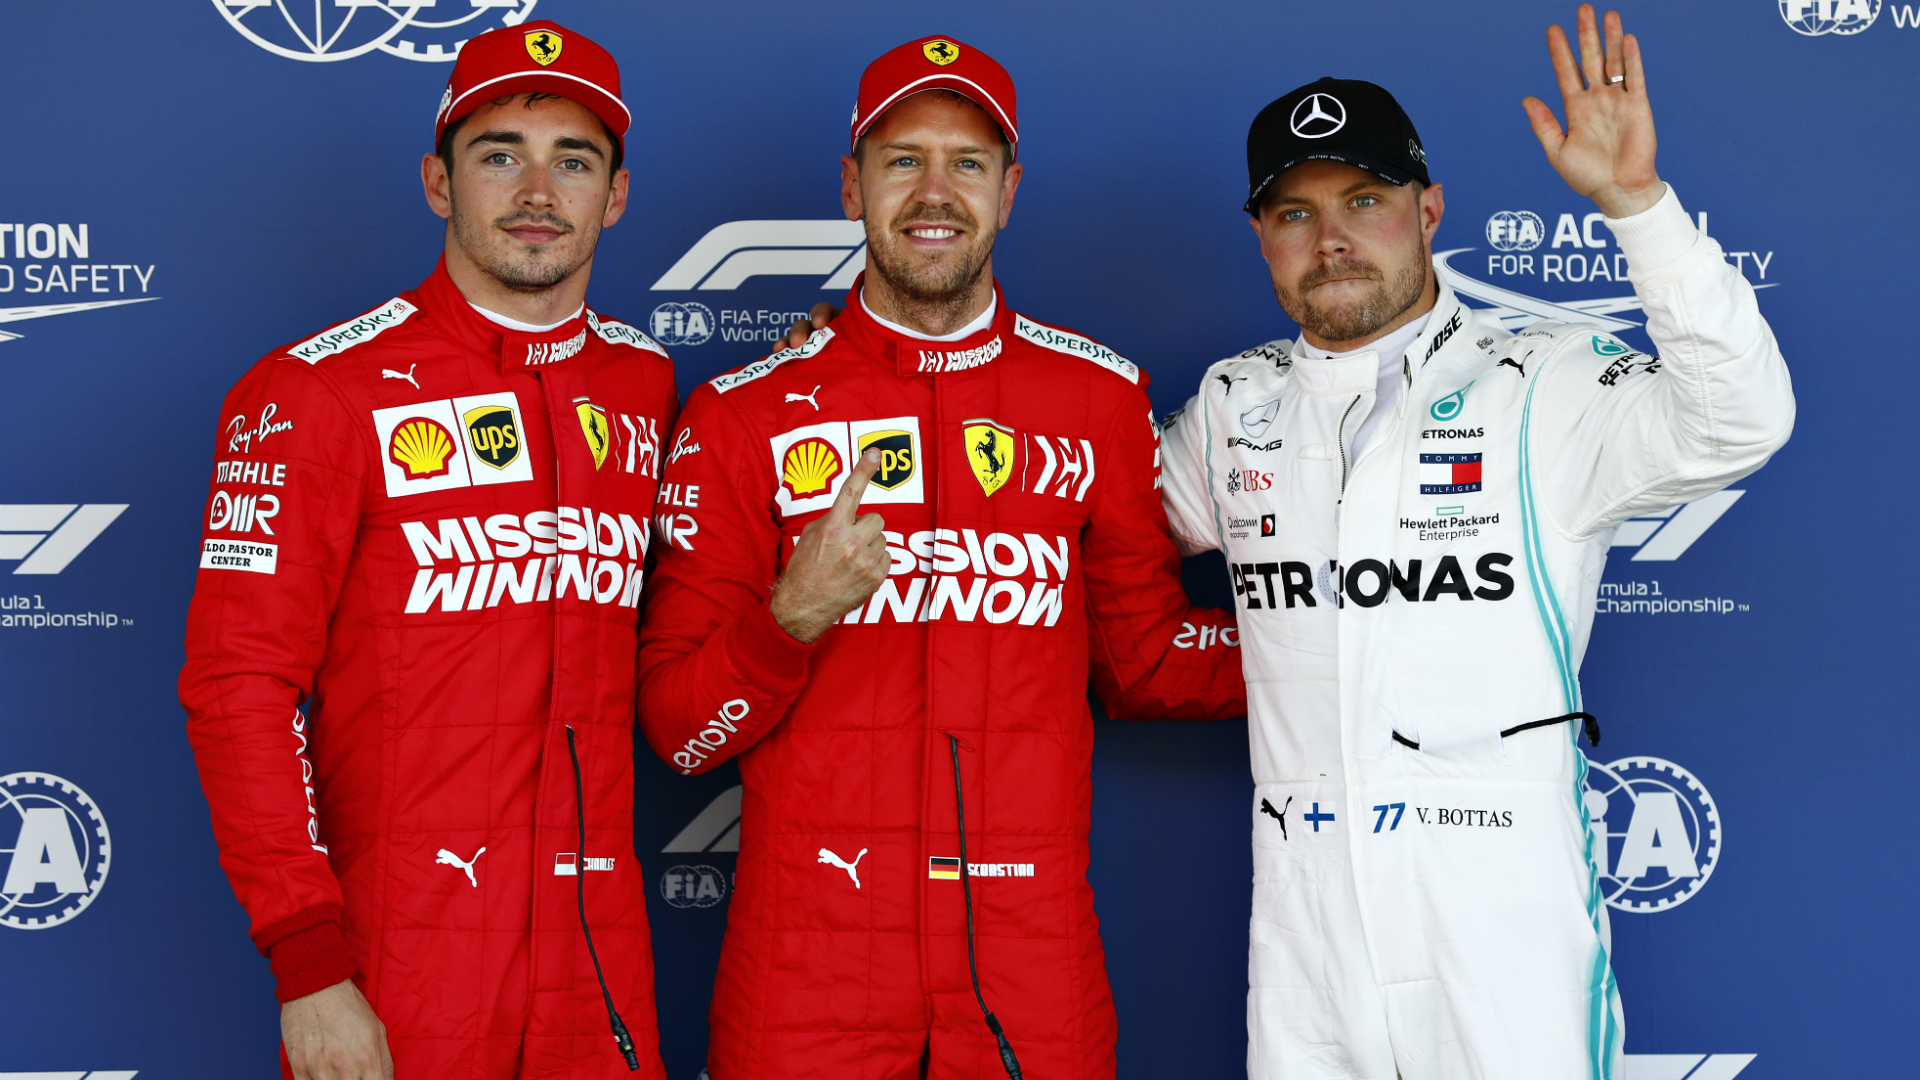 Vettel claims Suzuka pole as Ferrari secure front-row lockout